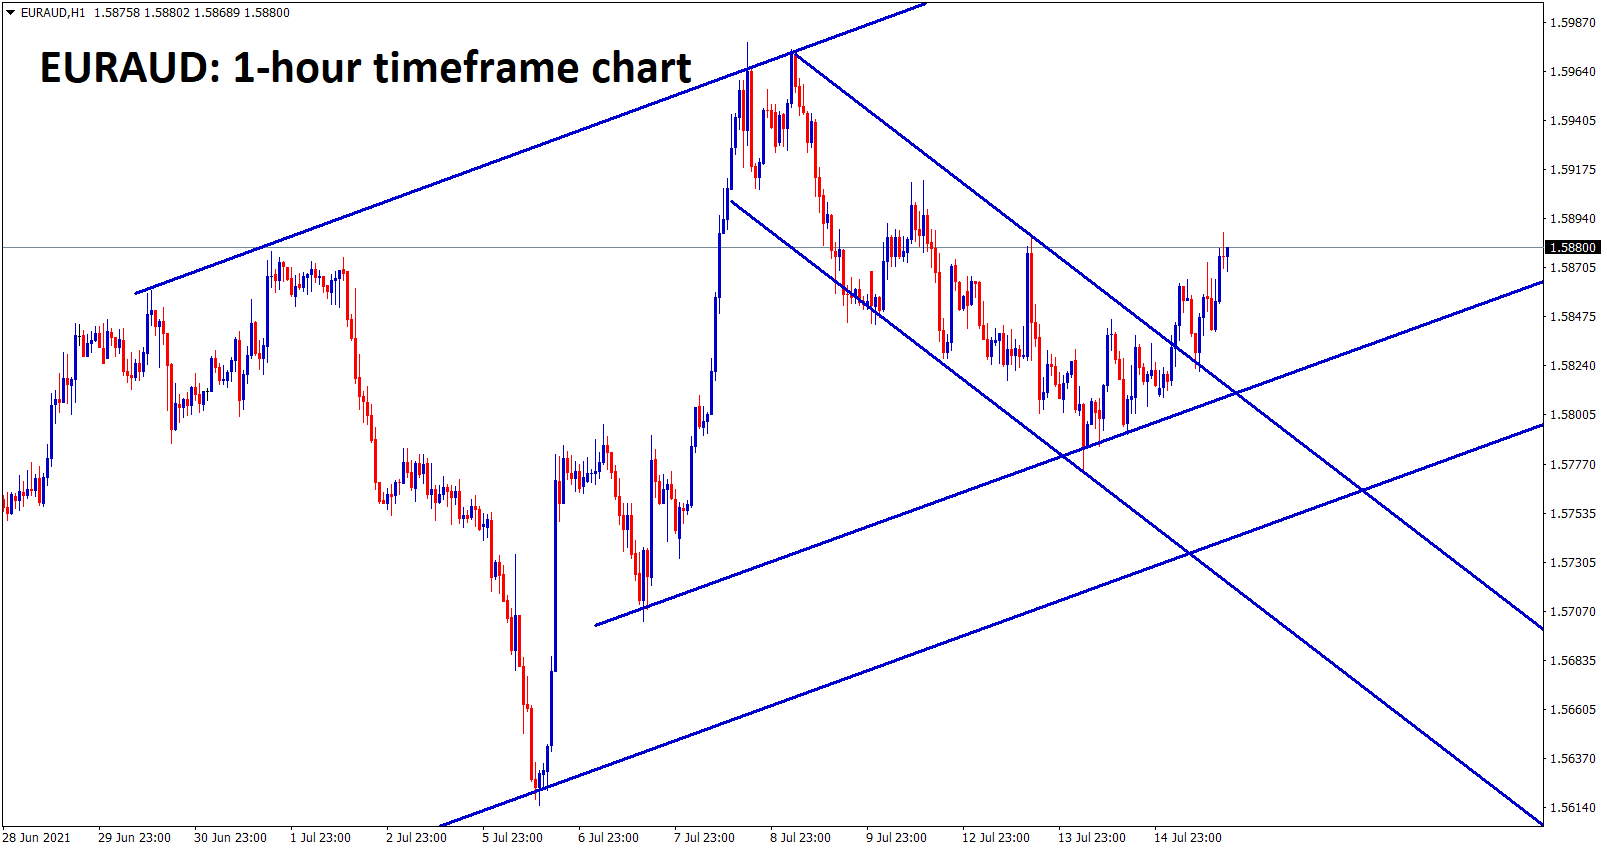 EURAUD is bouncing back after breaking and retesting the minor descending channel